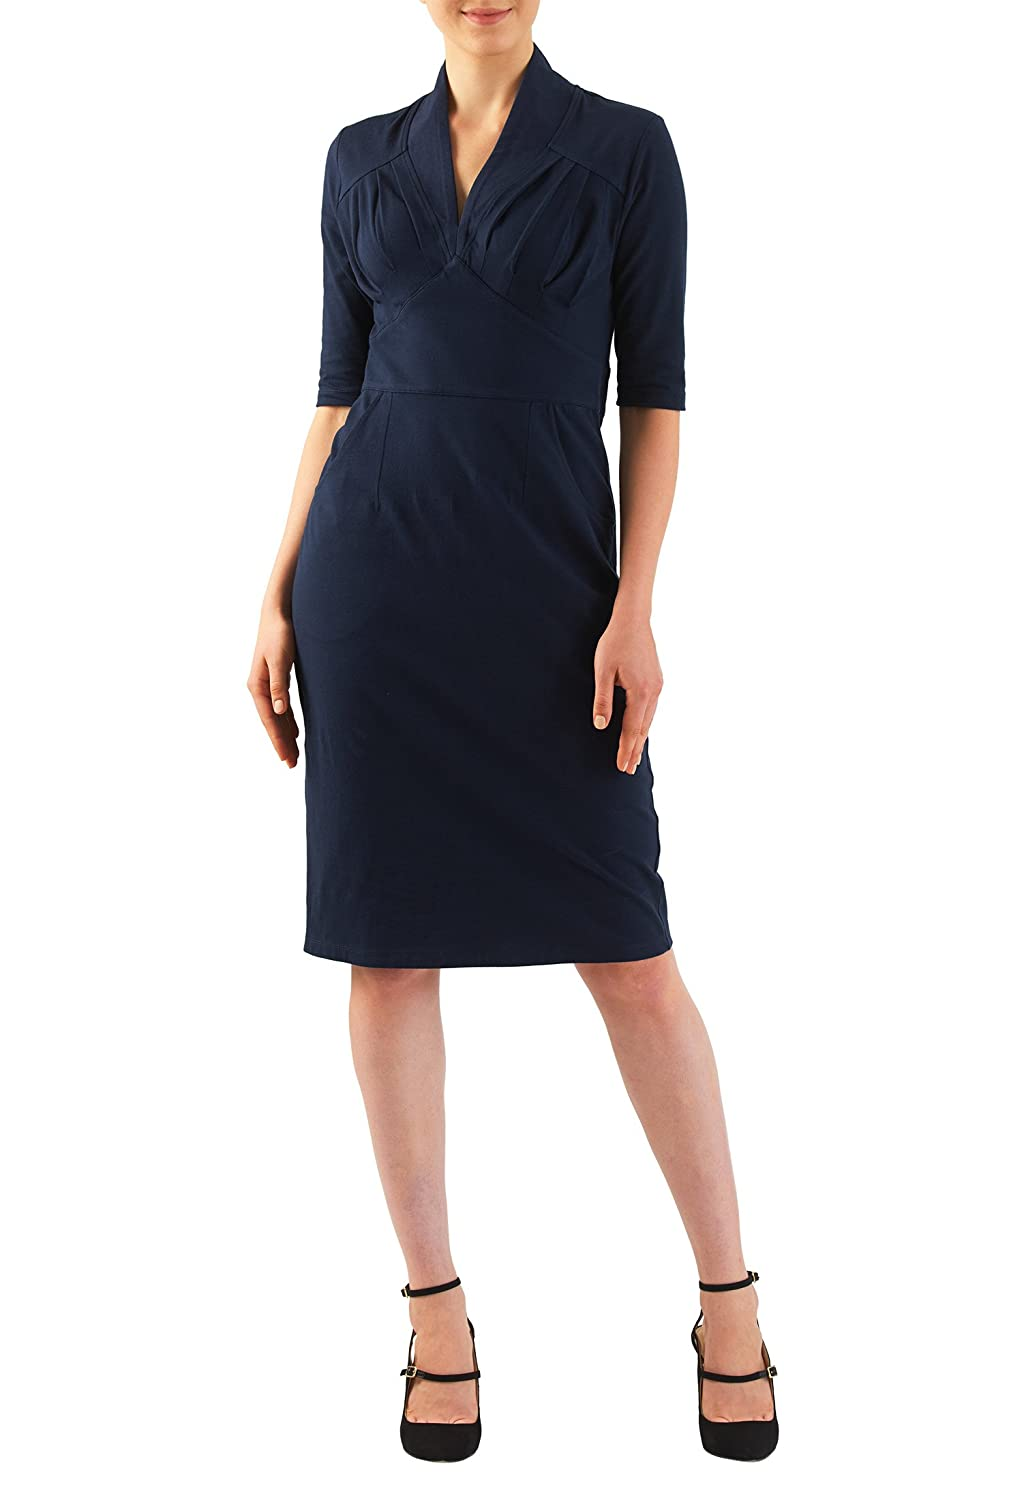 Wiggle Dresses | Pencil Dresses  Feminine pleated cotton knit sheath dress $54.95 AT vintagedancer.com